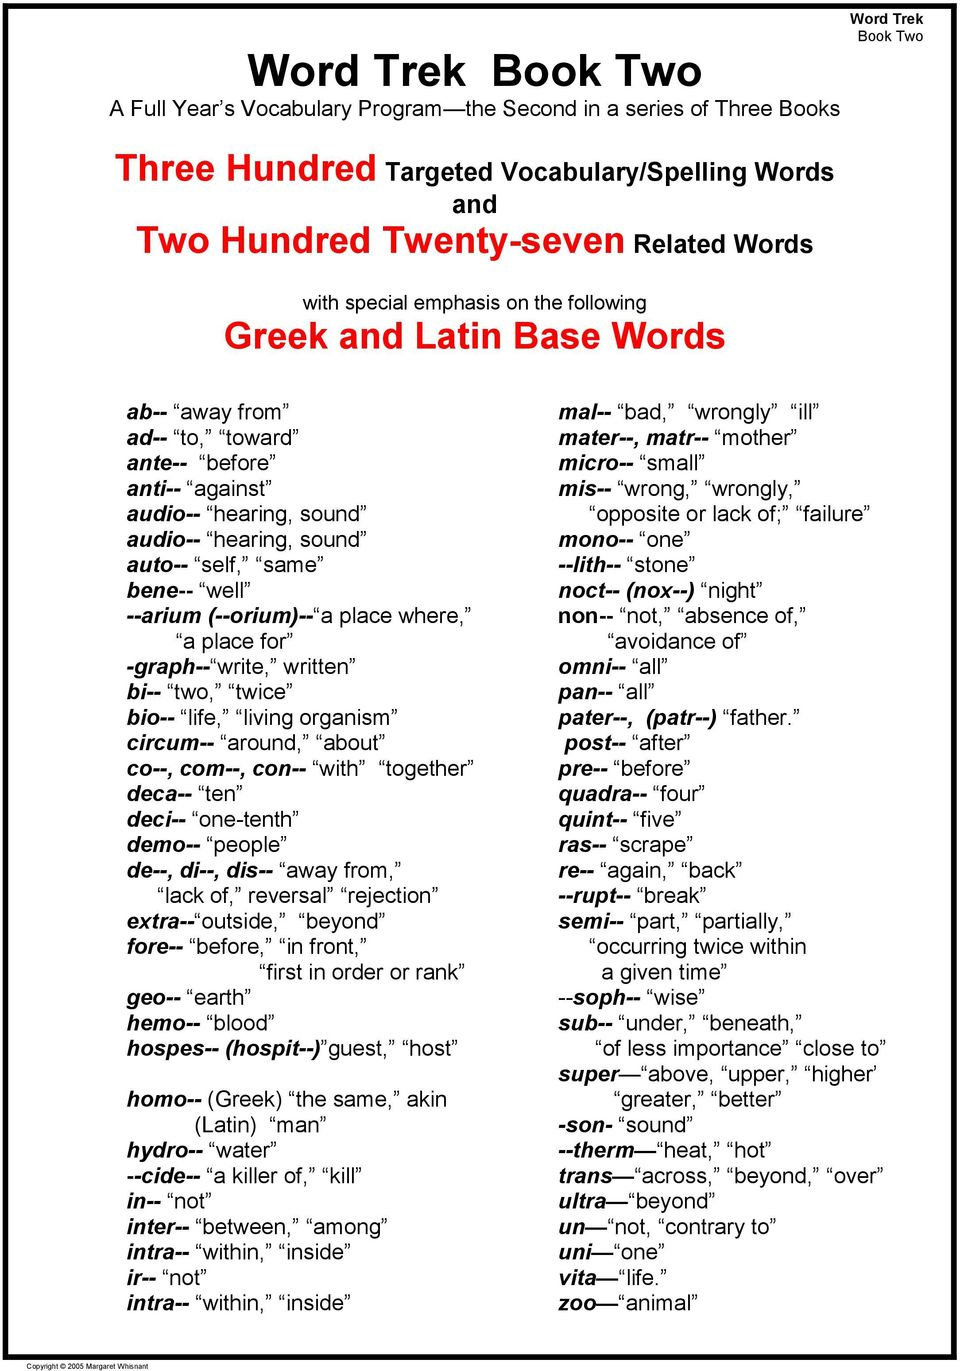 Word Trek  Free Sample Lessons, Tests, Keys, and Reference